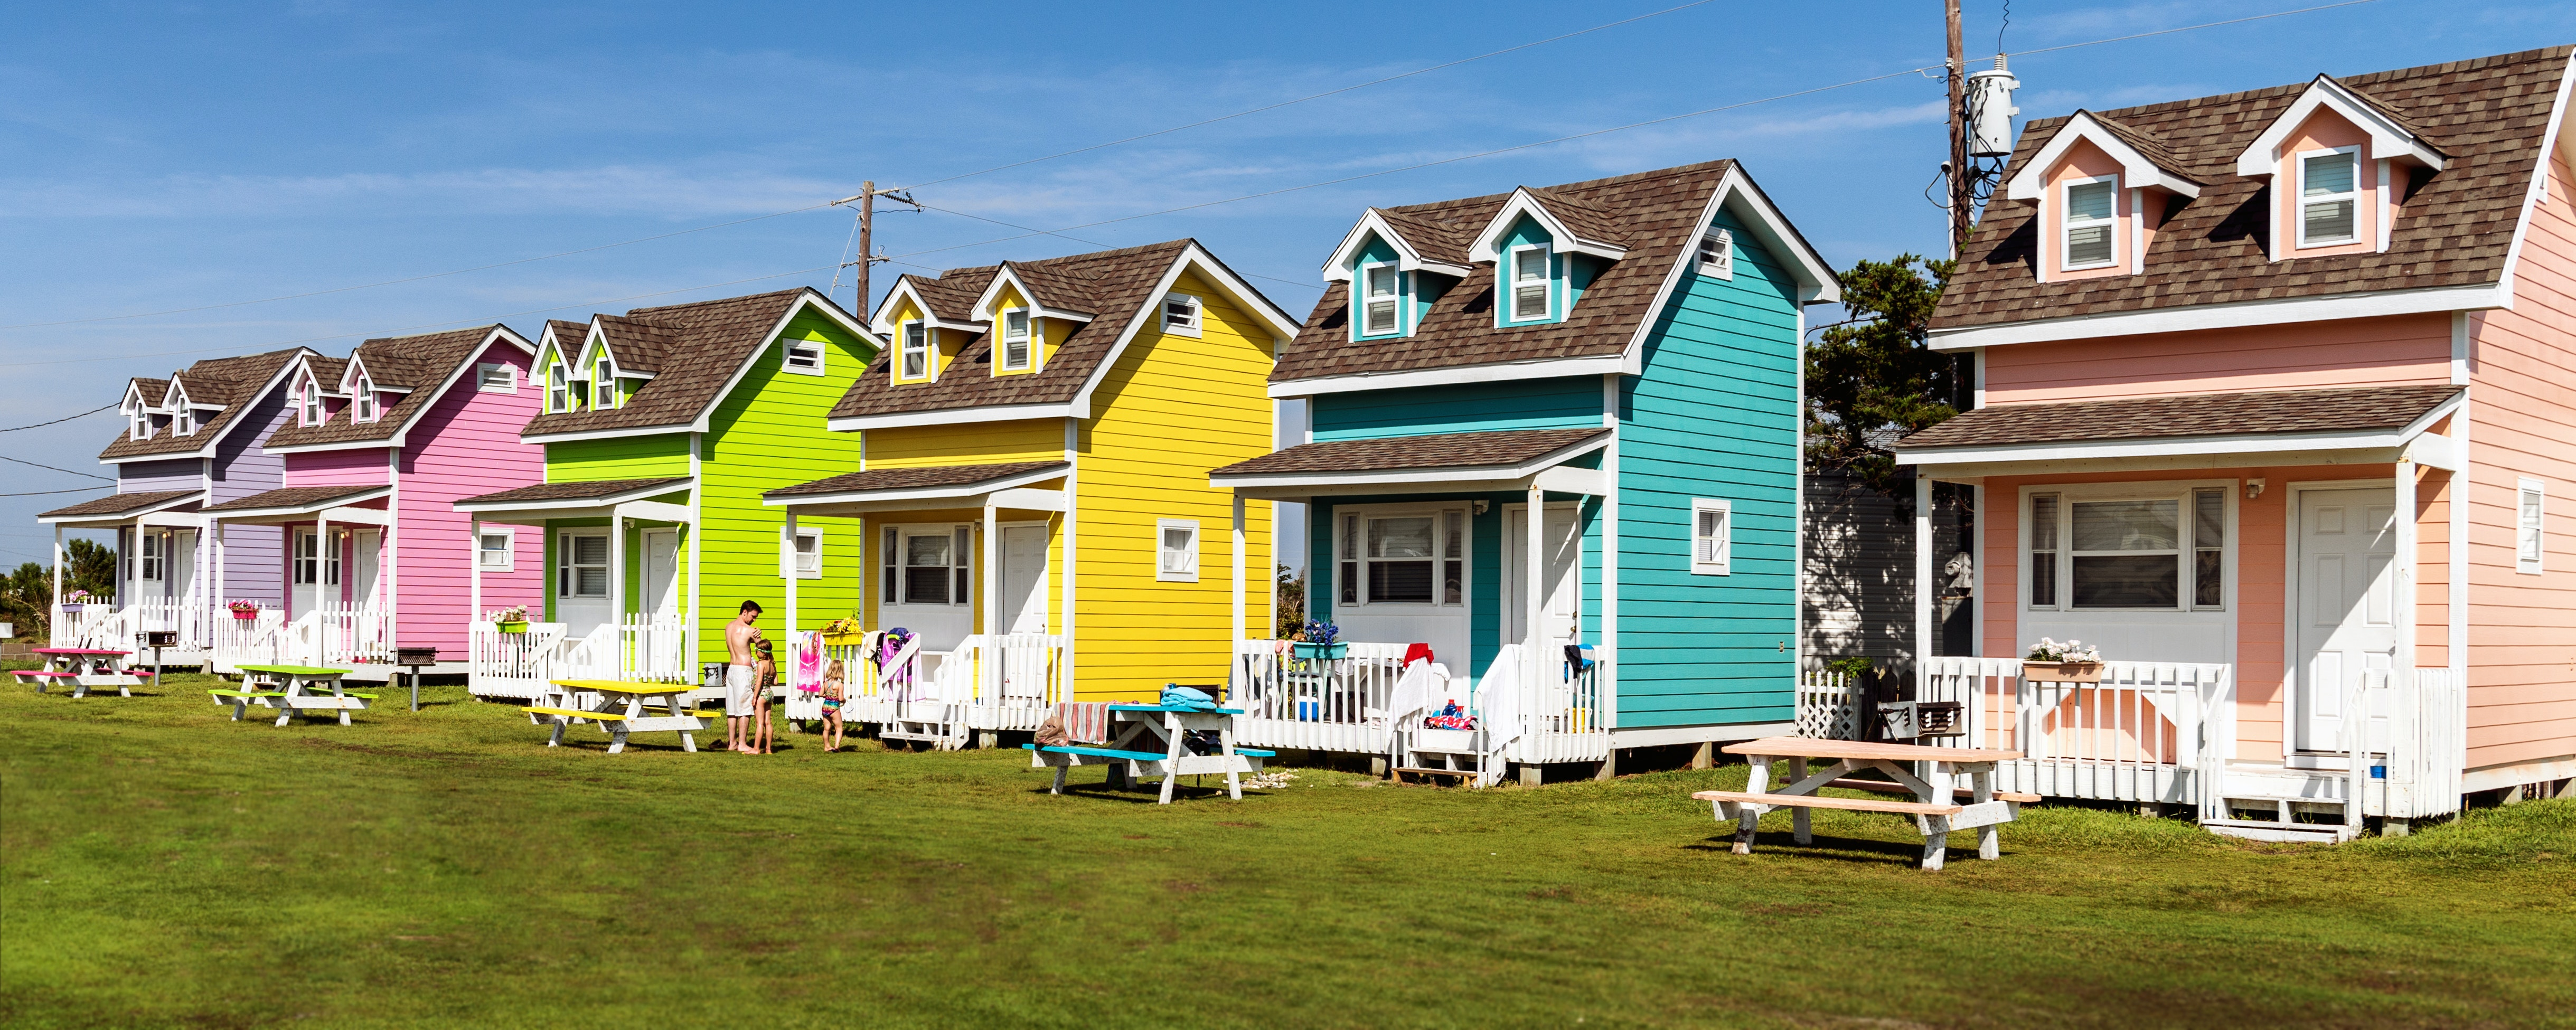 The Problem with Tiny Houses That No One Talks About